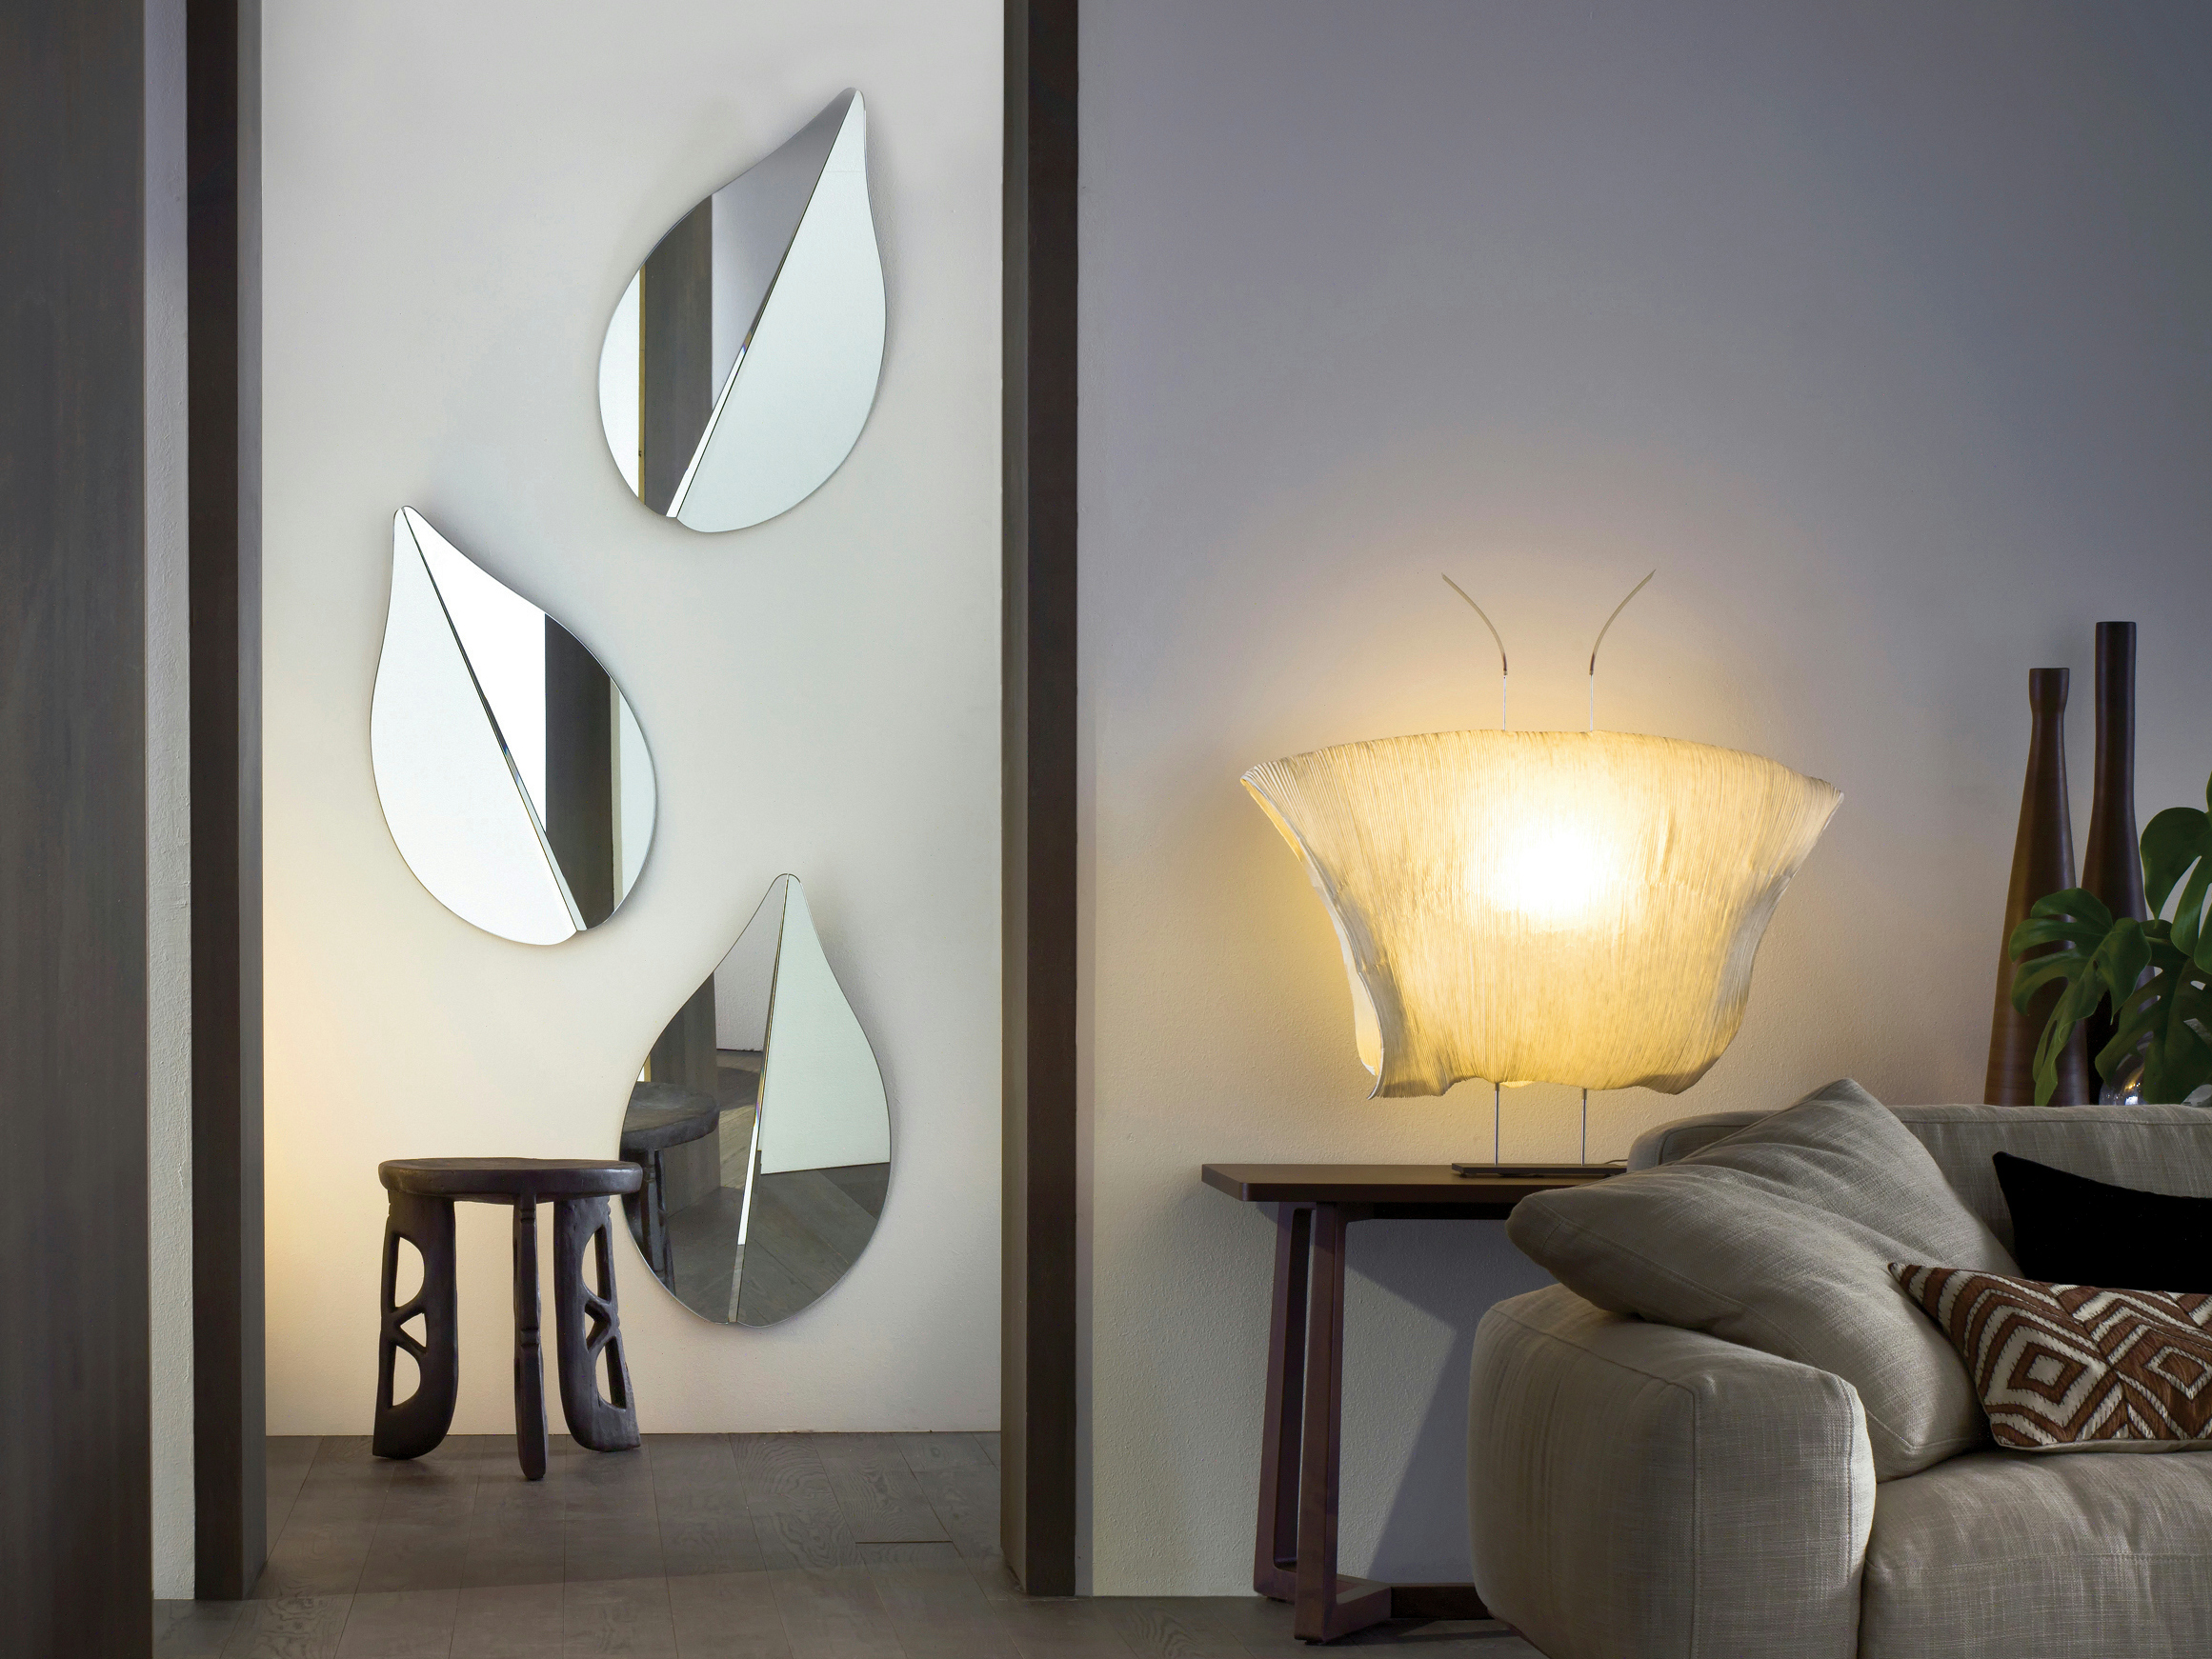 miroir mural spring by gallotti radice design ricardo. Black Bedroom Furniture Sets. Home Design Ideas